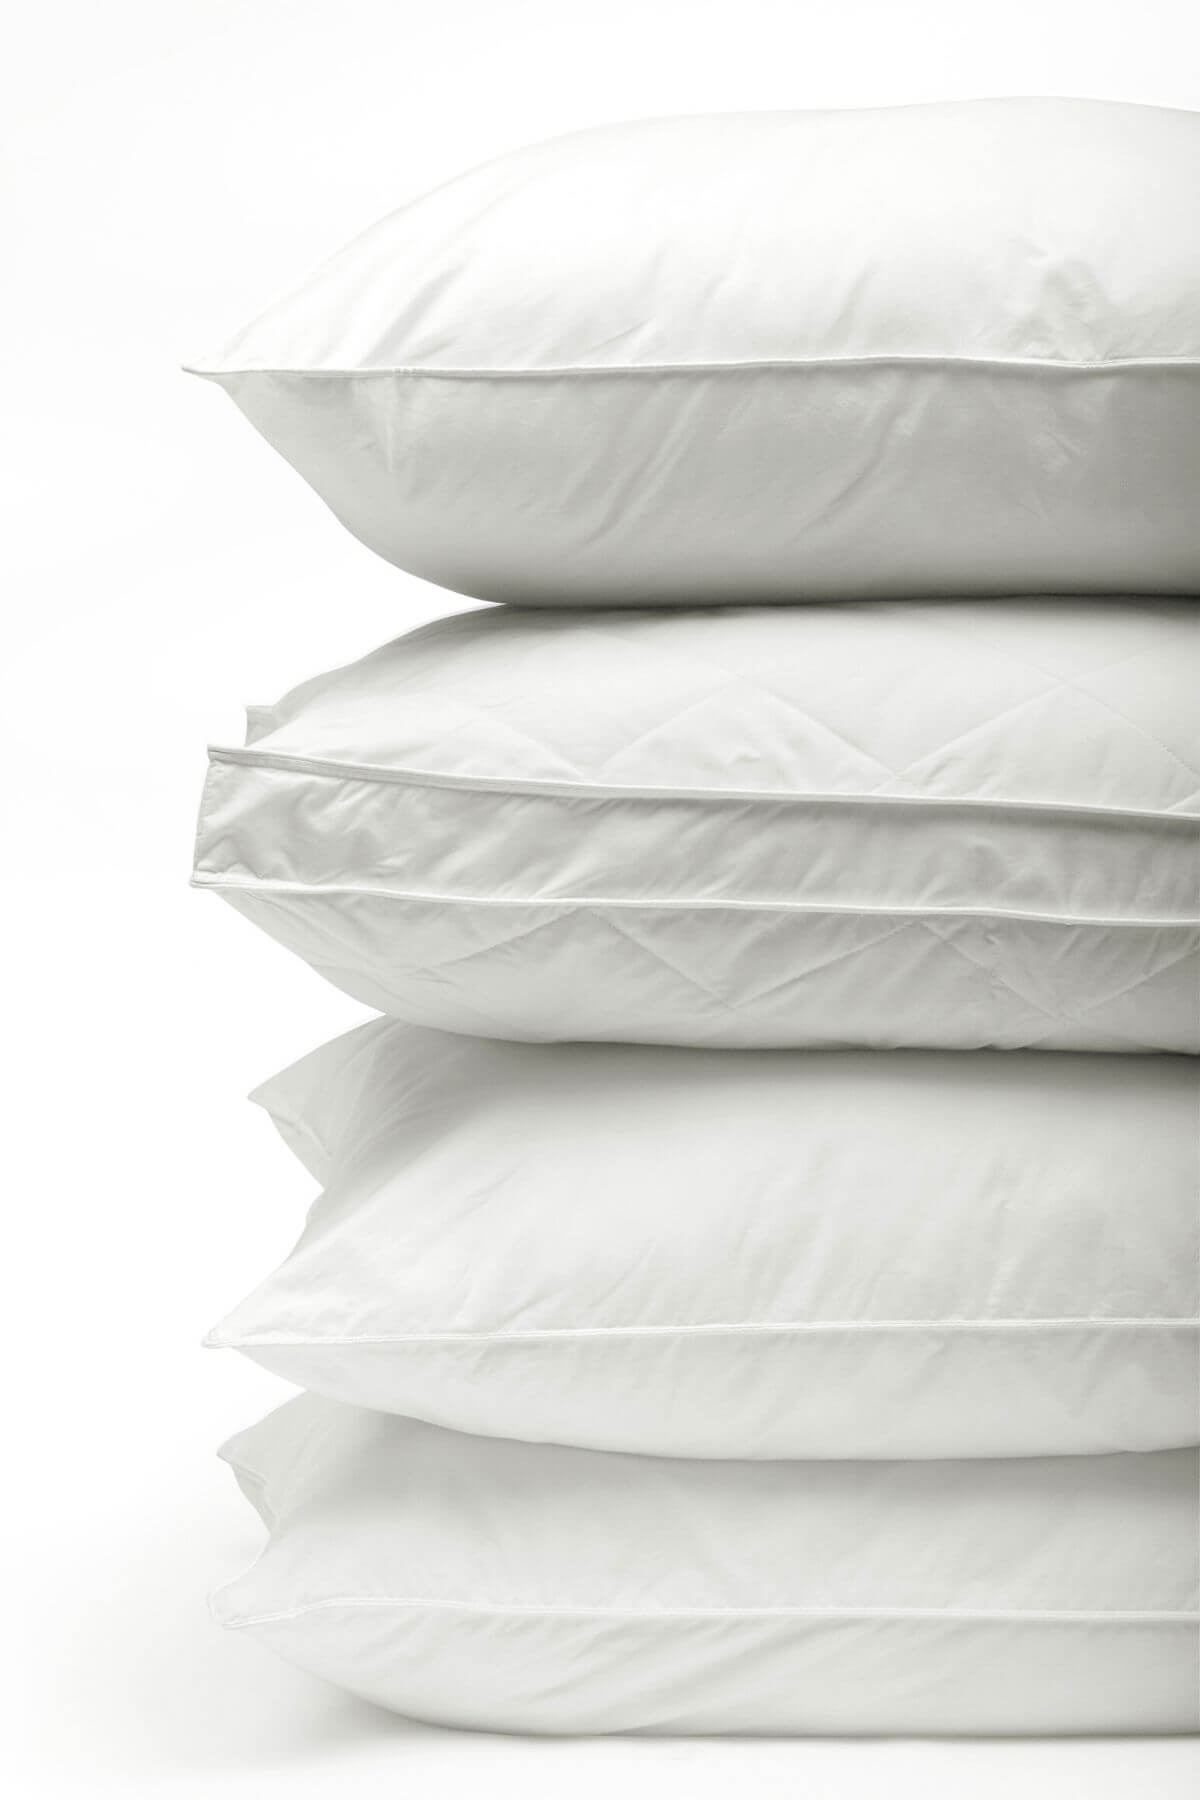 How to wash pillows guide